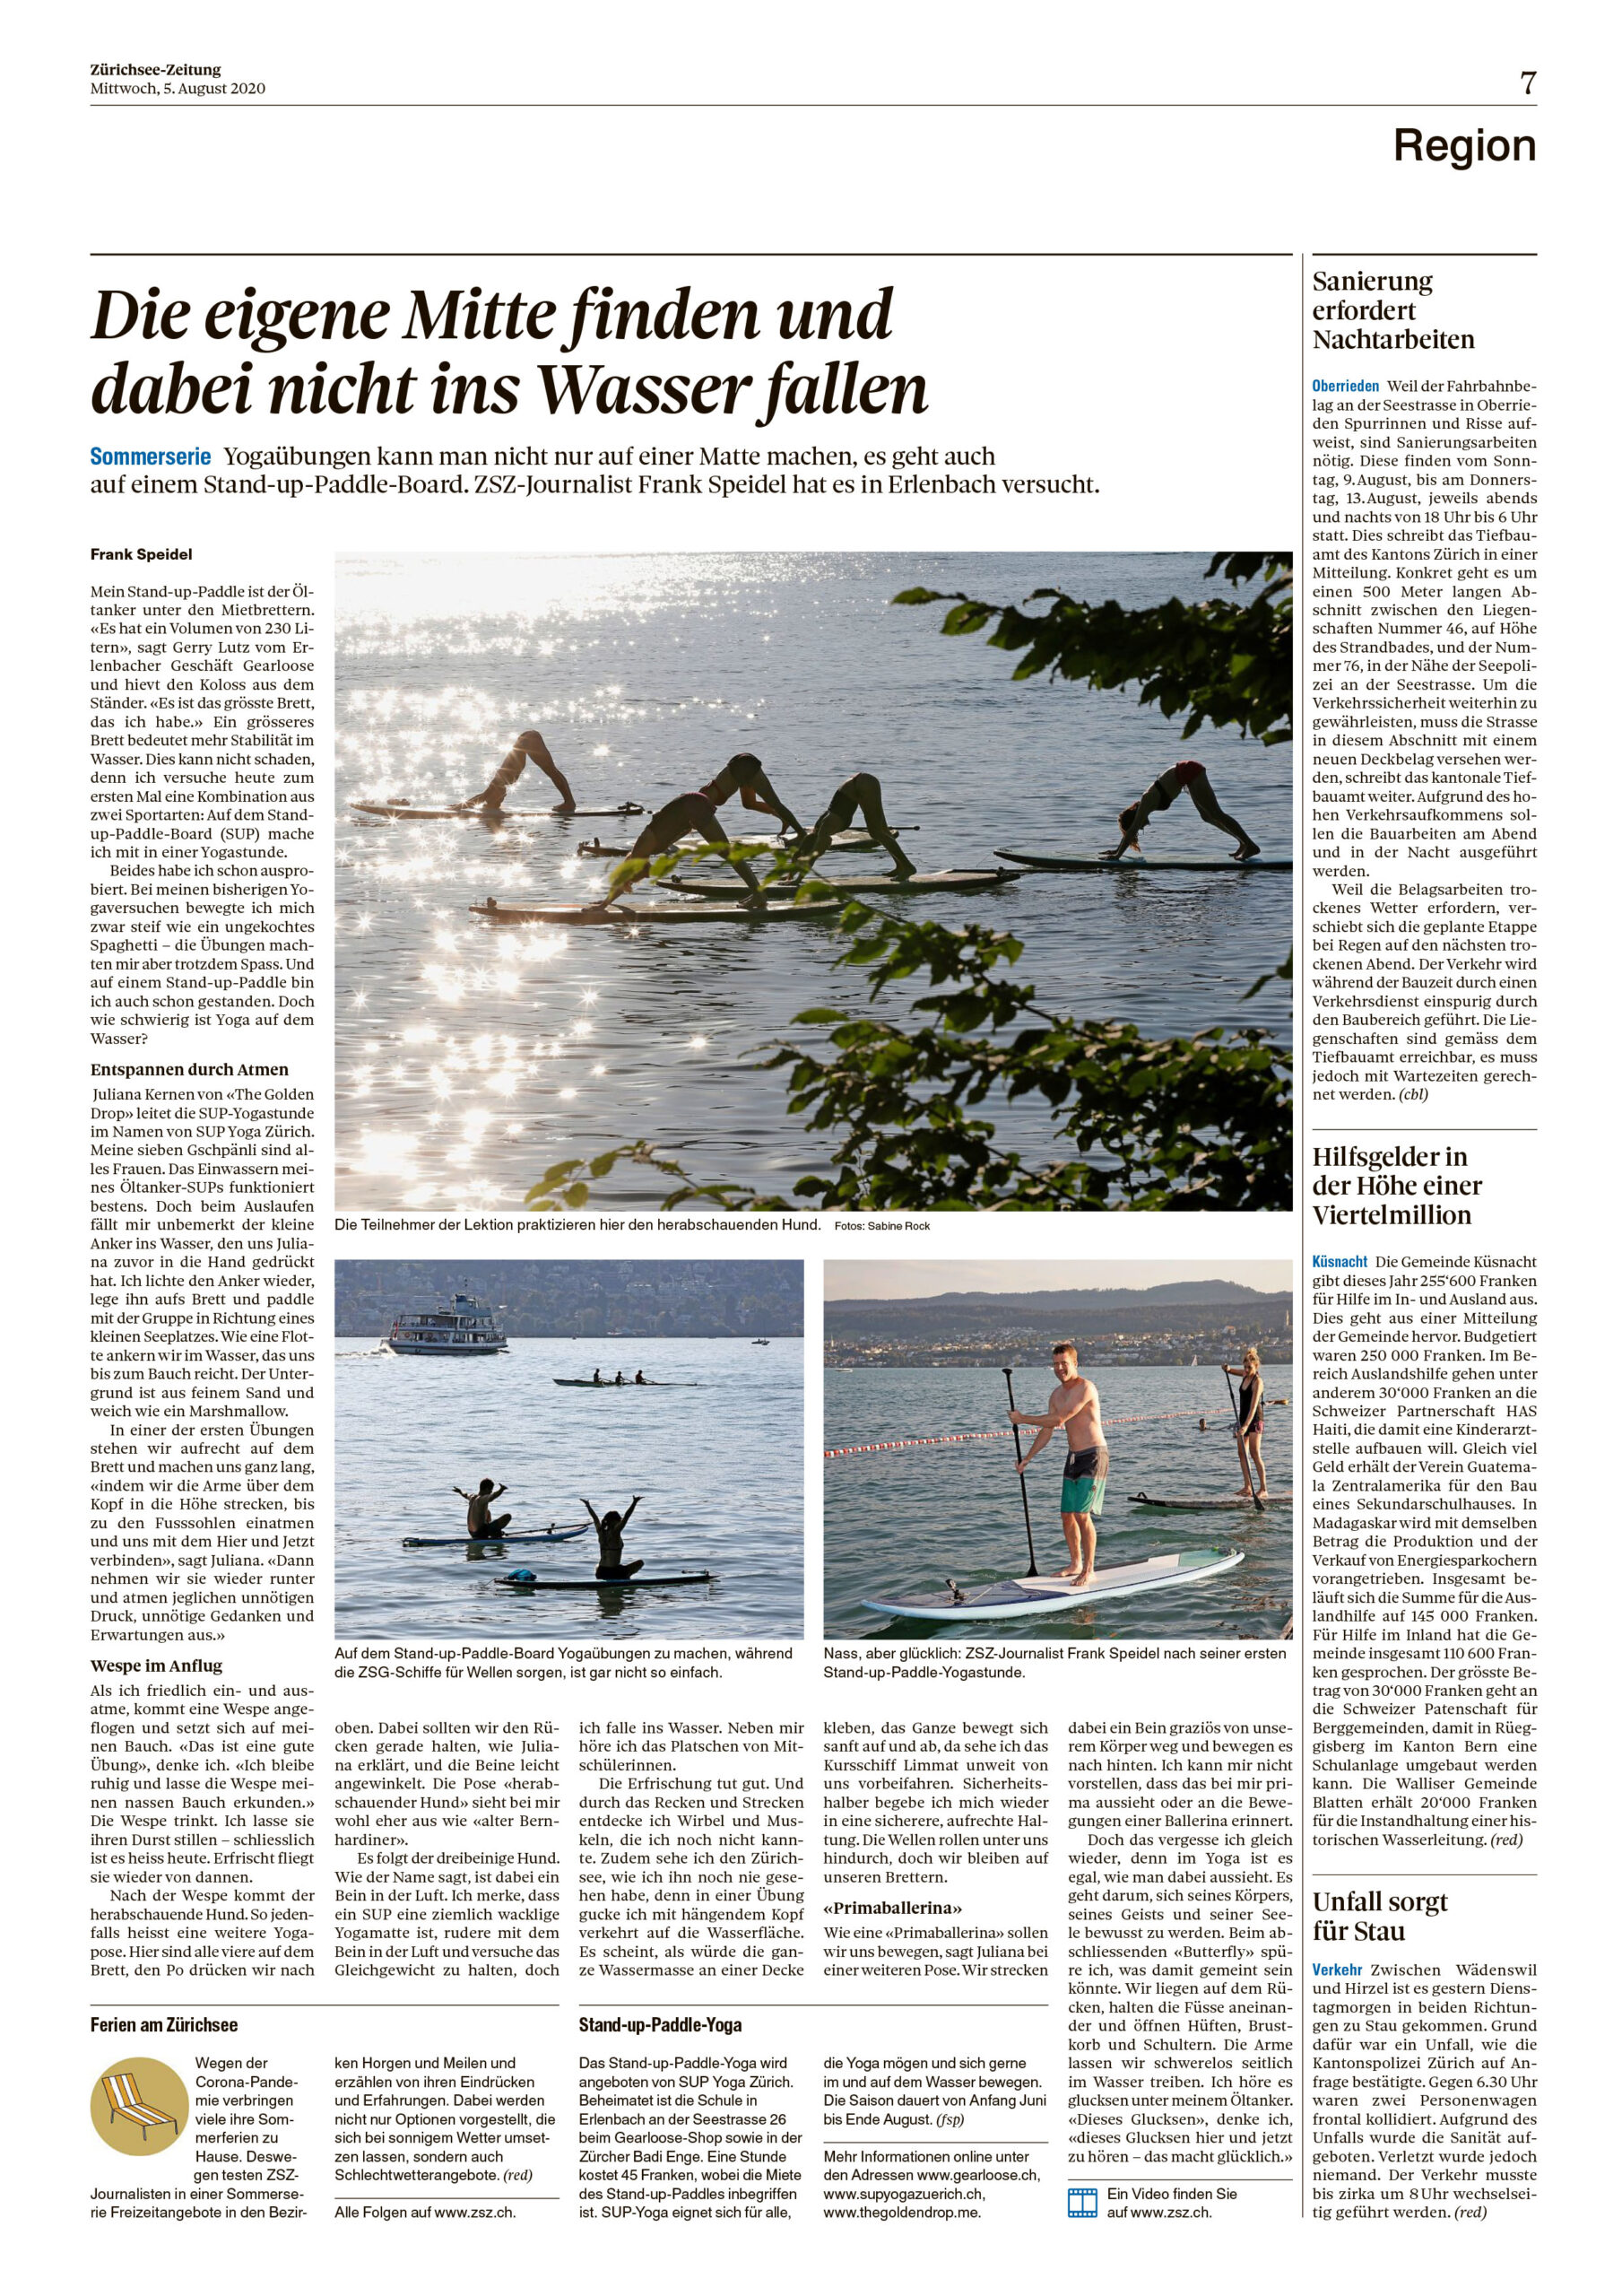 Artikel Züriseezeitung | Sup Yoga | the golden drop | die Achtsamkeitsschule | Achtsamkeit, Yoga, bewusste Entspannung